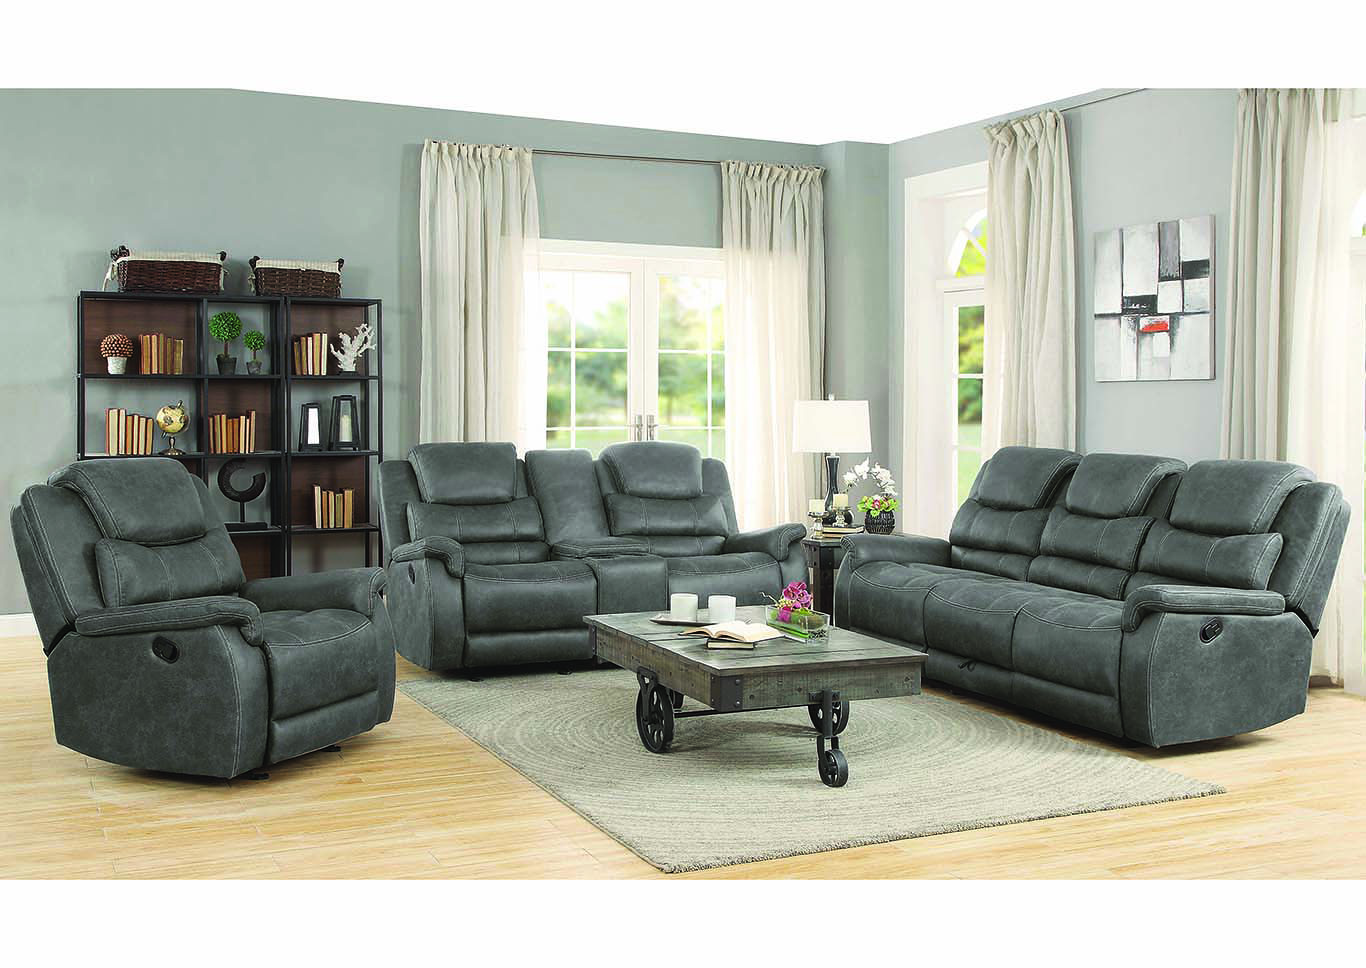 Grey Glider Motion Reclining Loveseat w/ Console,Coaster Furniture